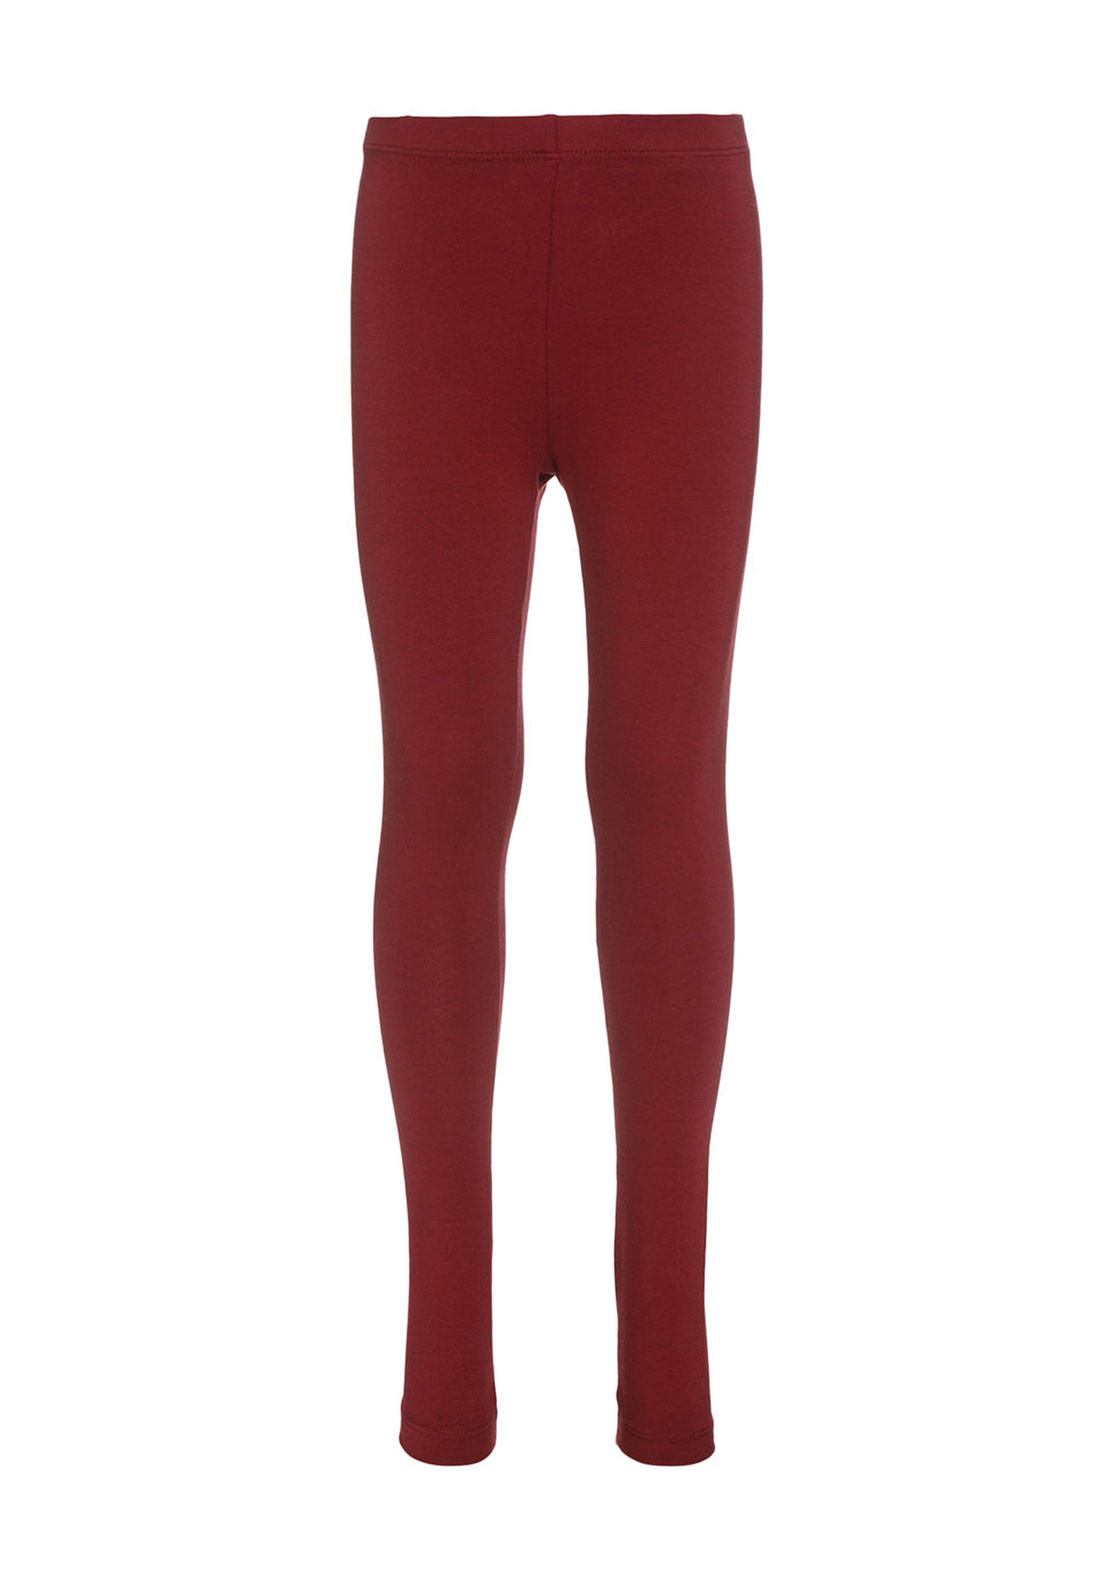 Name It Girls Vivian Leggings, Wine